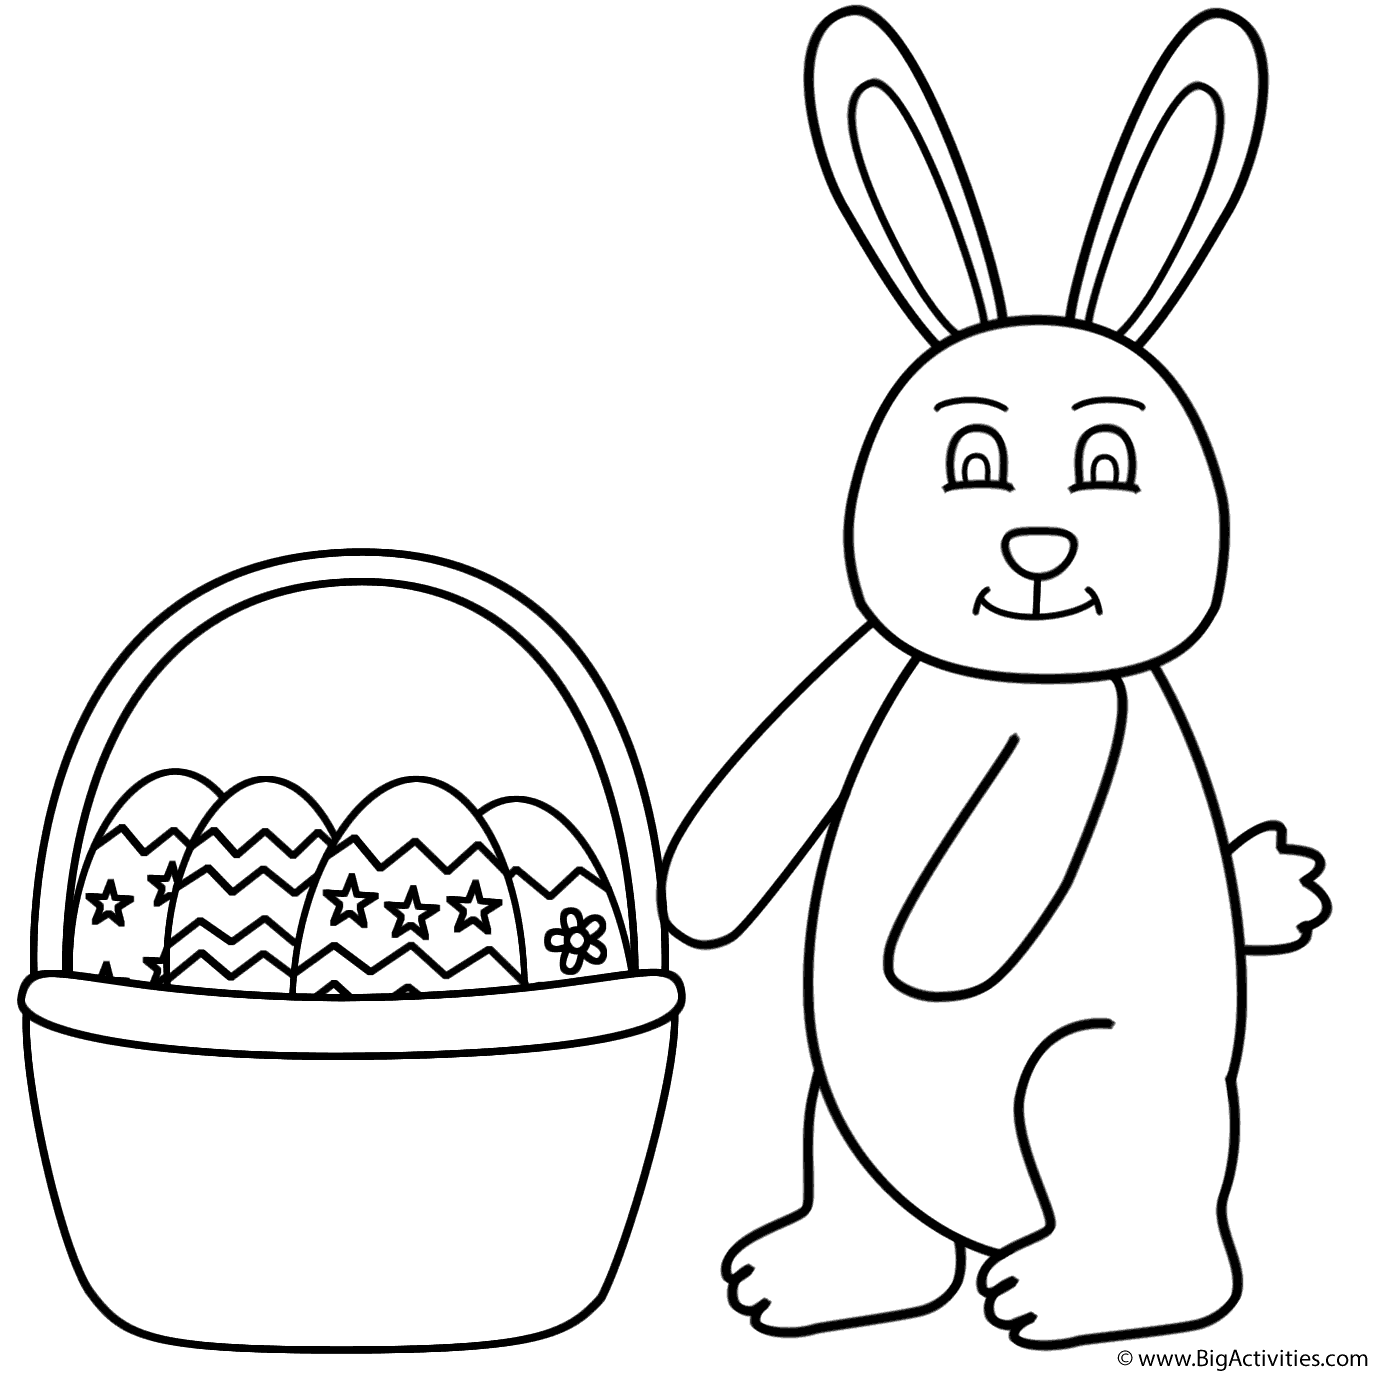 Easter Bunny And Basket Of Easter Eggs